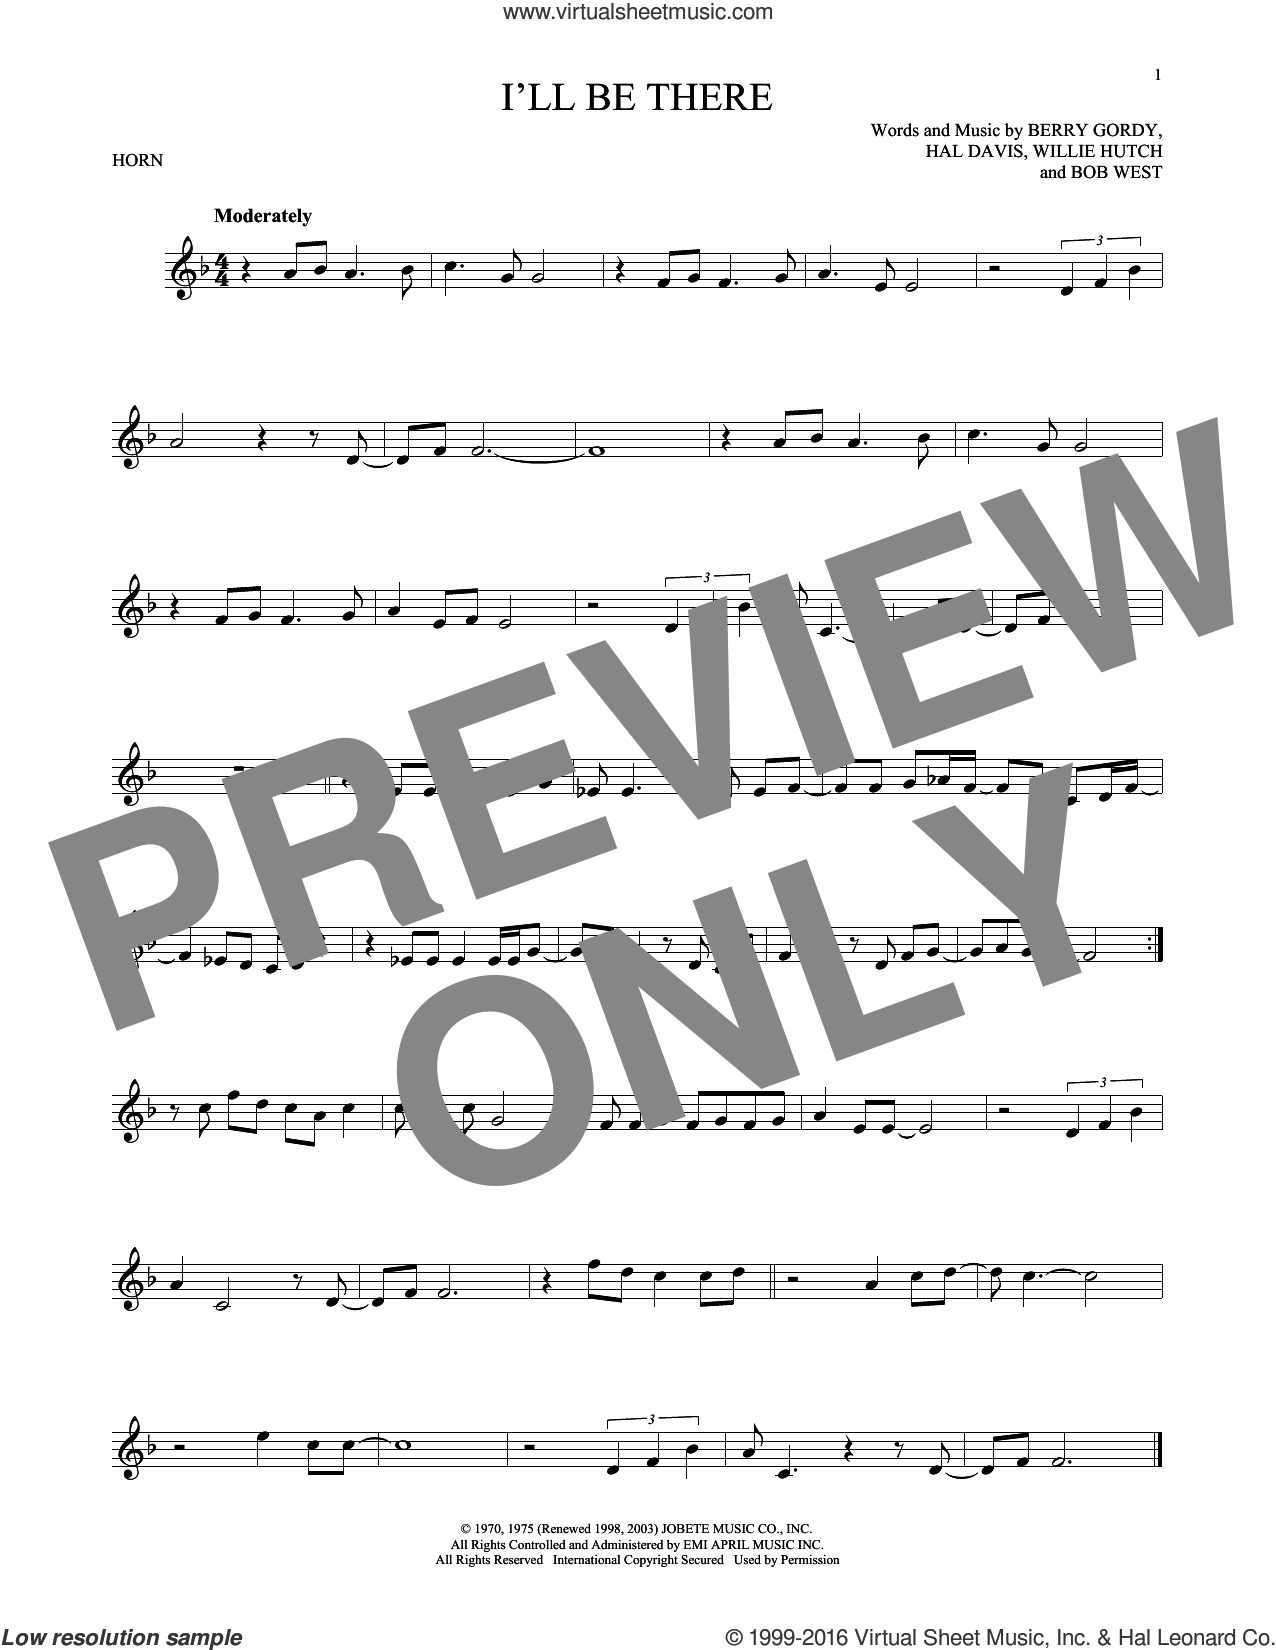 I'll Be There sheet music for horn solo by The Jackson 5, Berry Gordy Jr., Bob West and Hal Davis, intermediate skill level